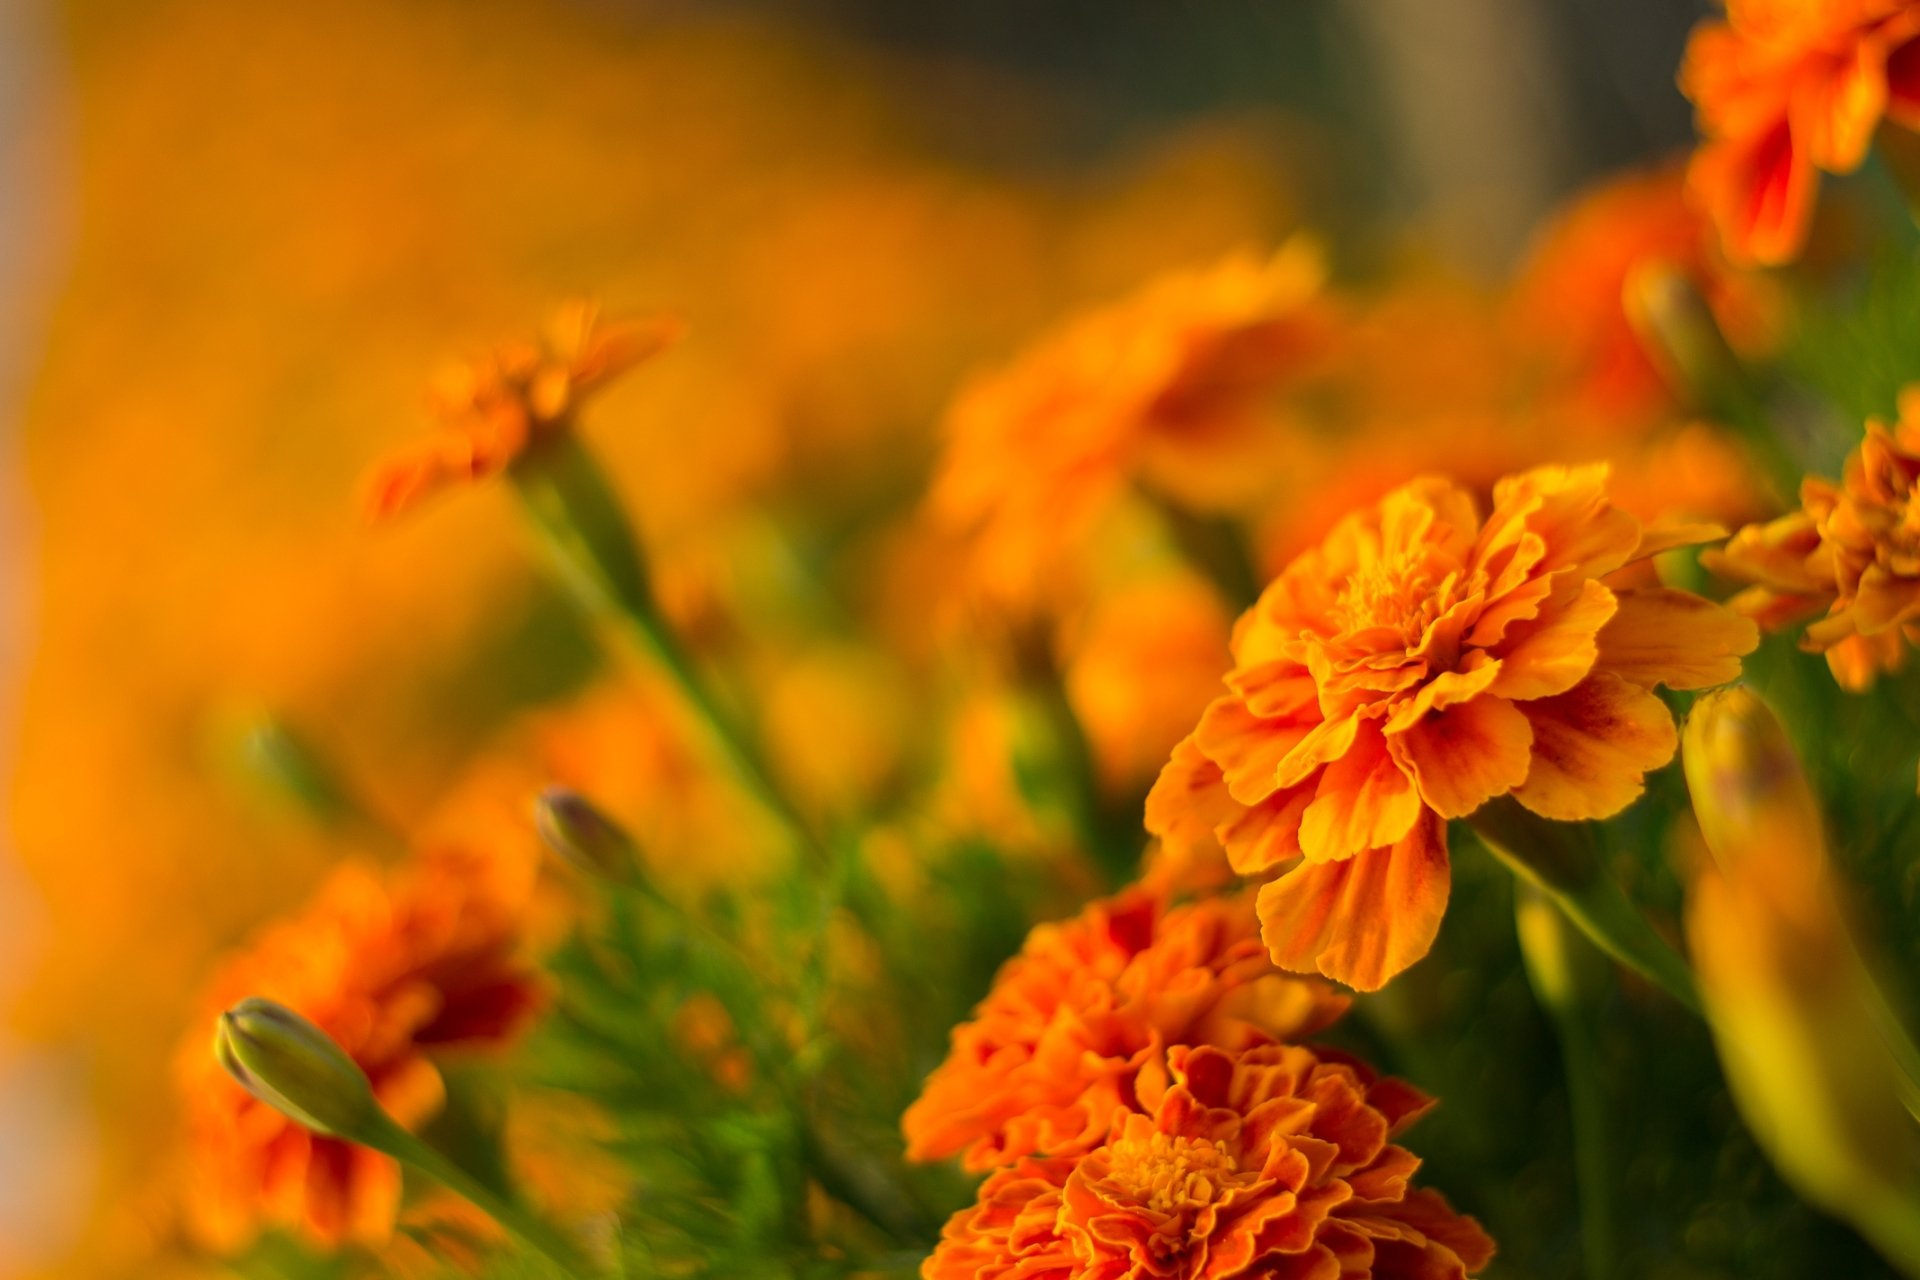 Marigold Hd Wallpaper Background Image 2136x1424 Id